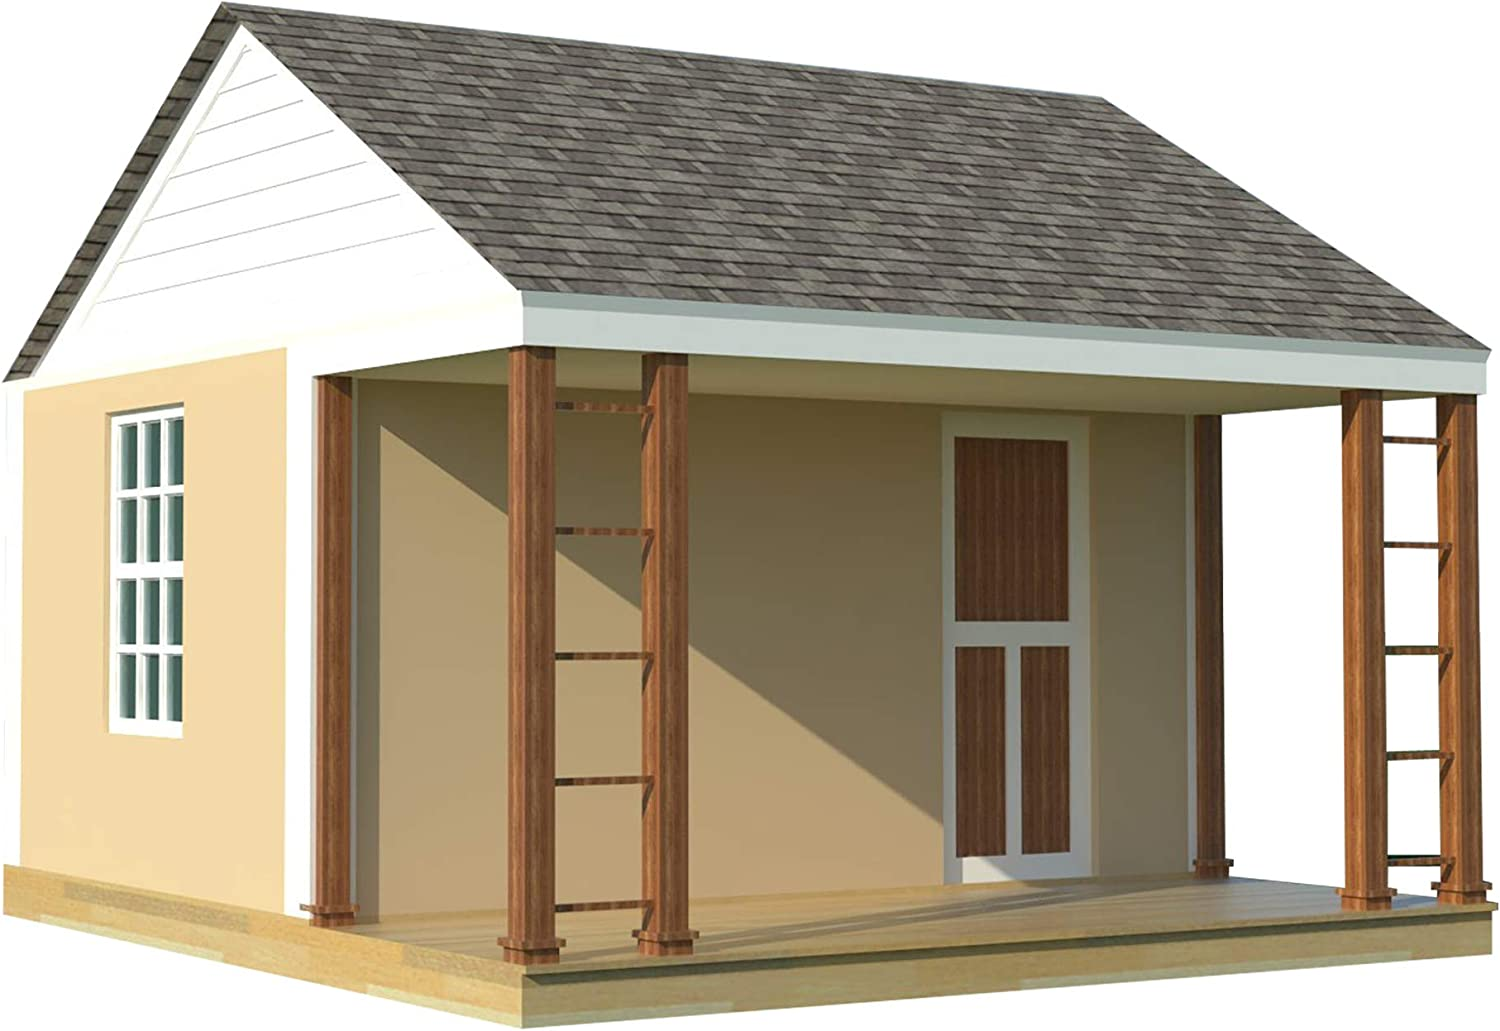 HOUSE PLANS CABIN